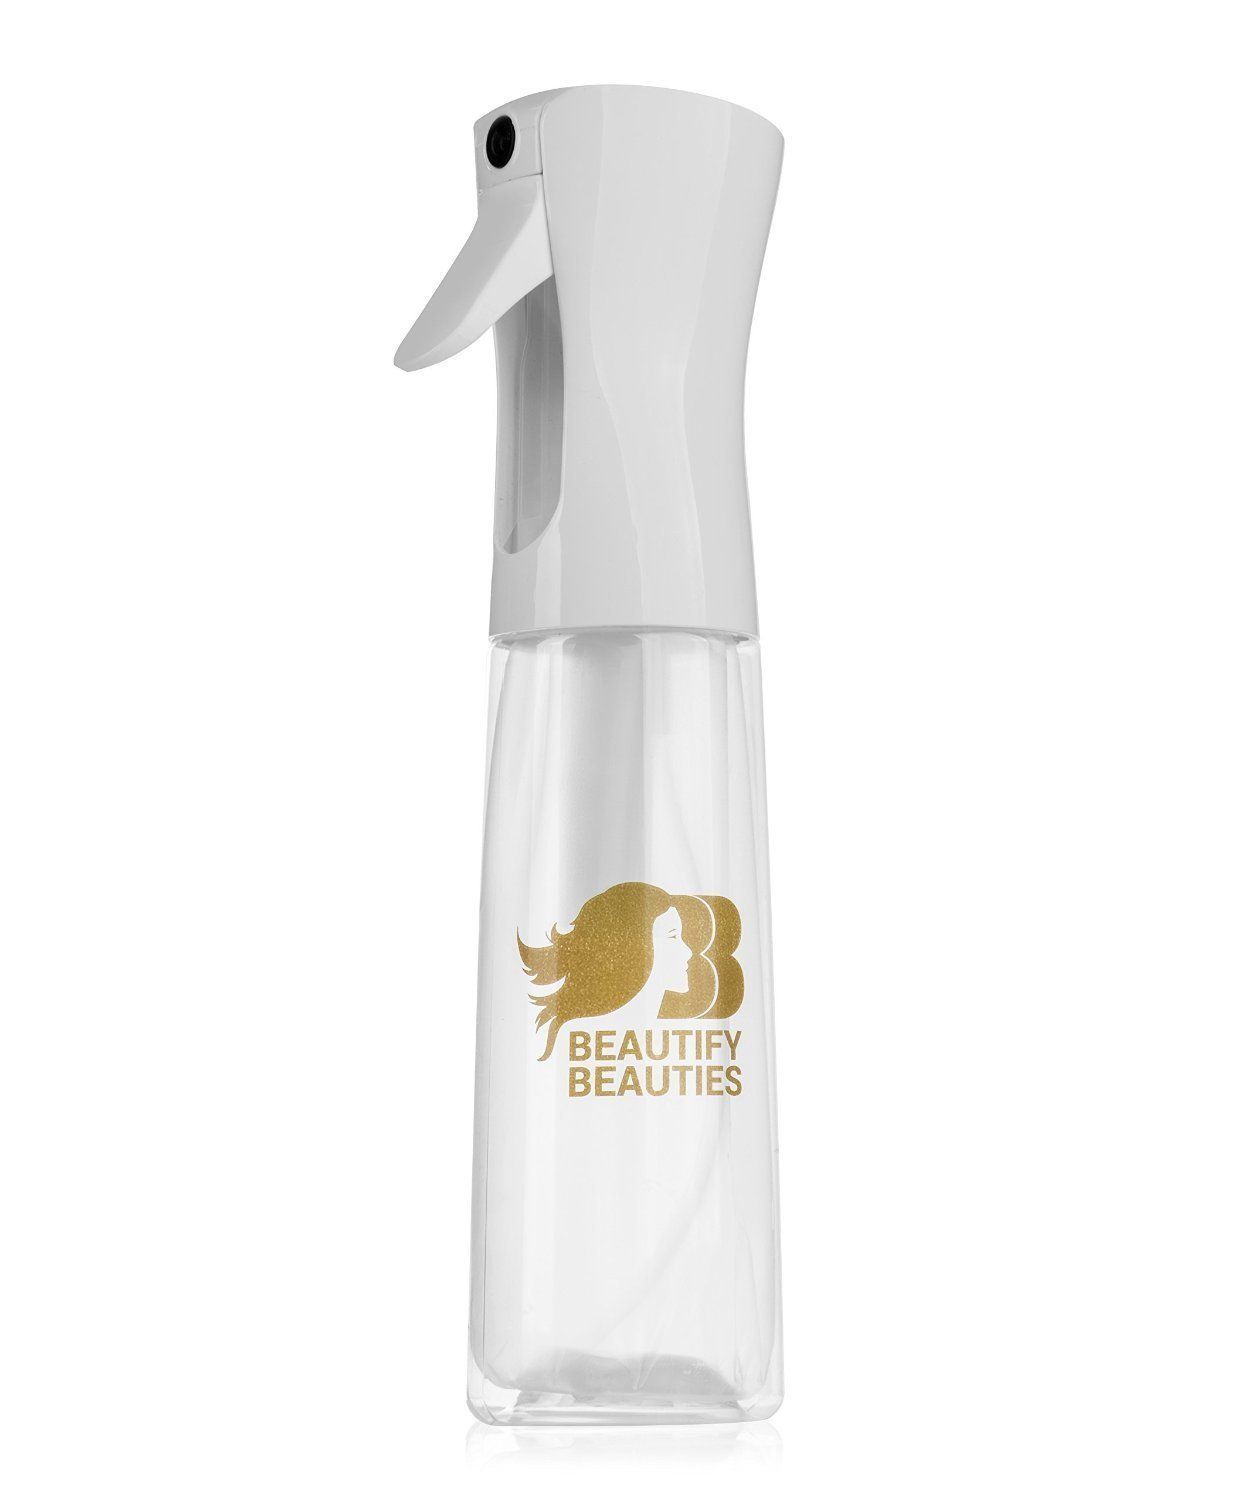 Beautify Beauties Original Flairosol Empty Clear Spray Bottle, Continuous Water Mister – 10 Ounce